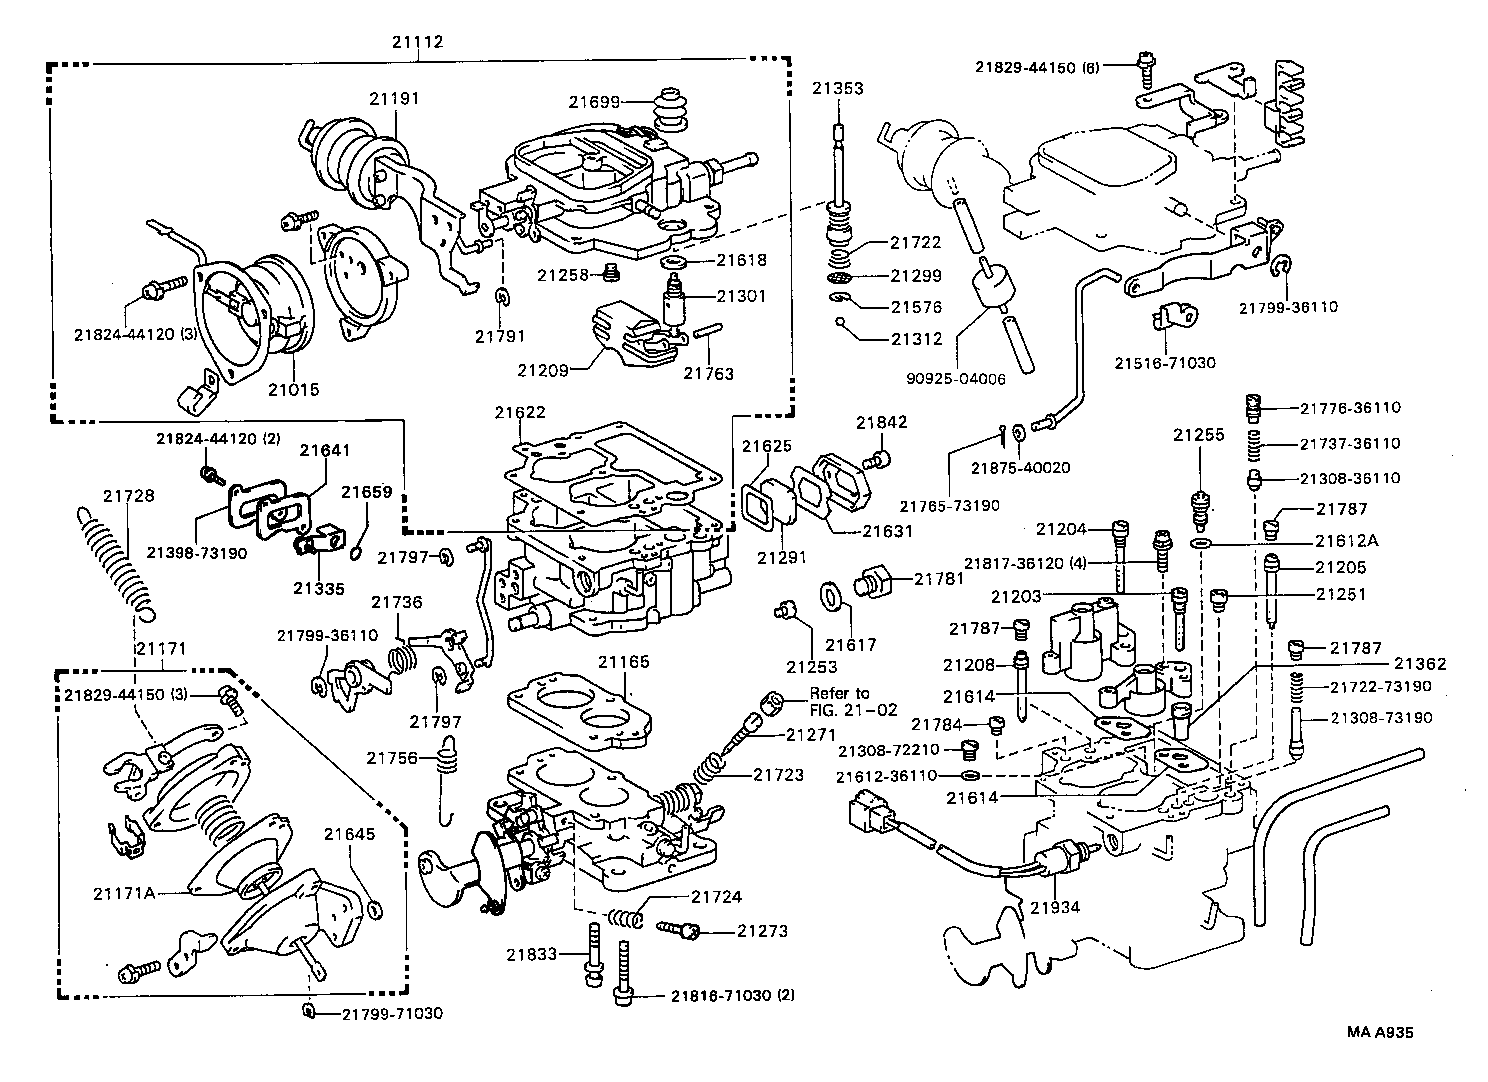 1996 toyota hilux parts catalog